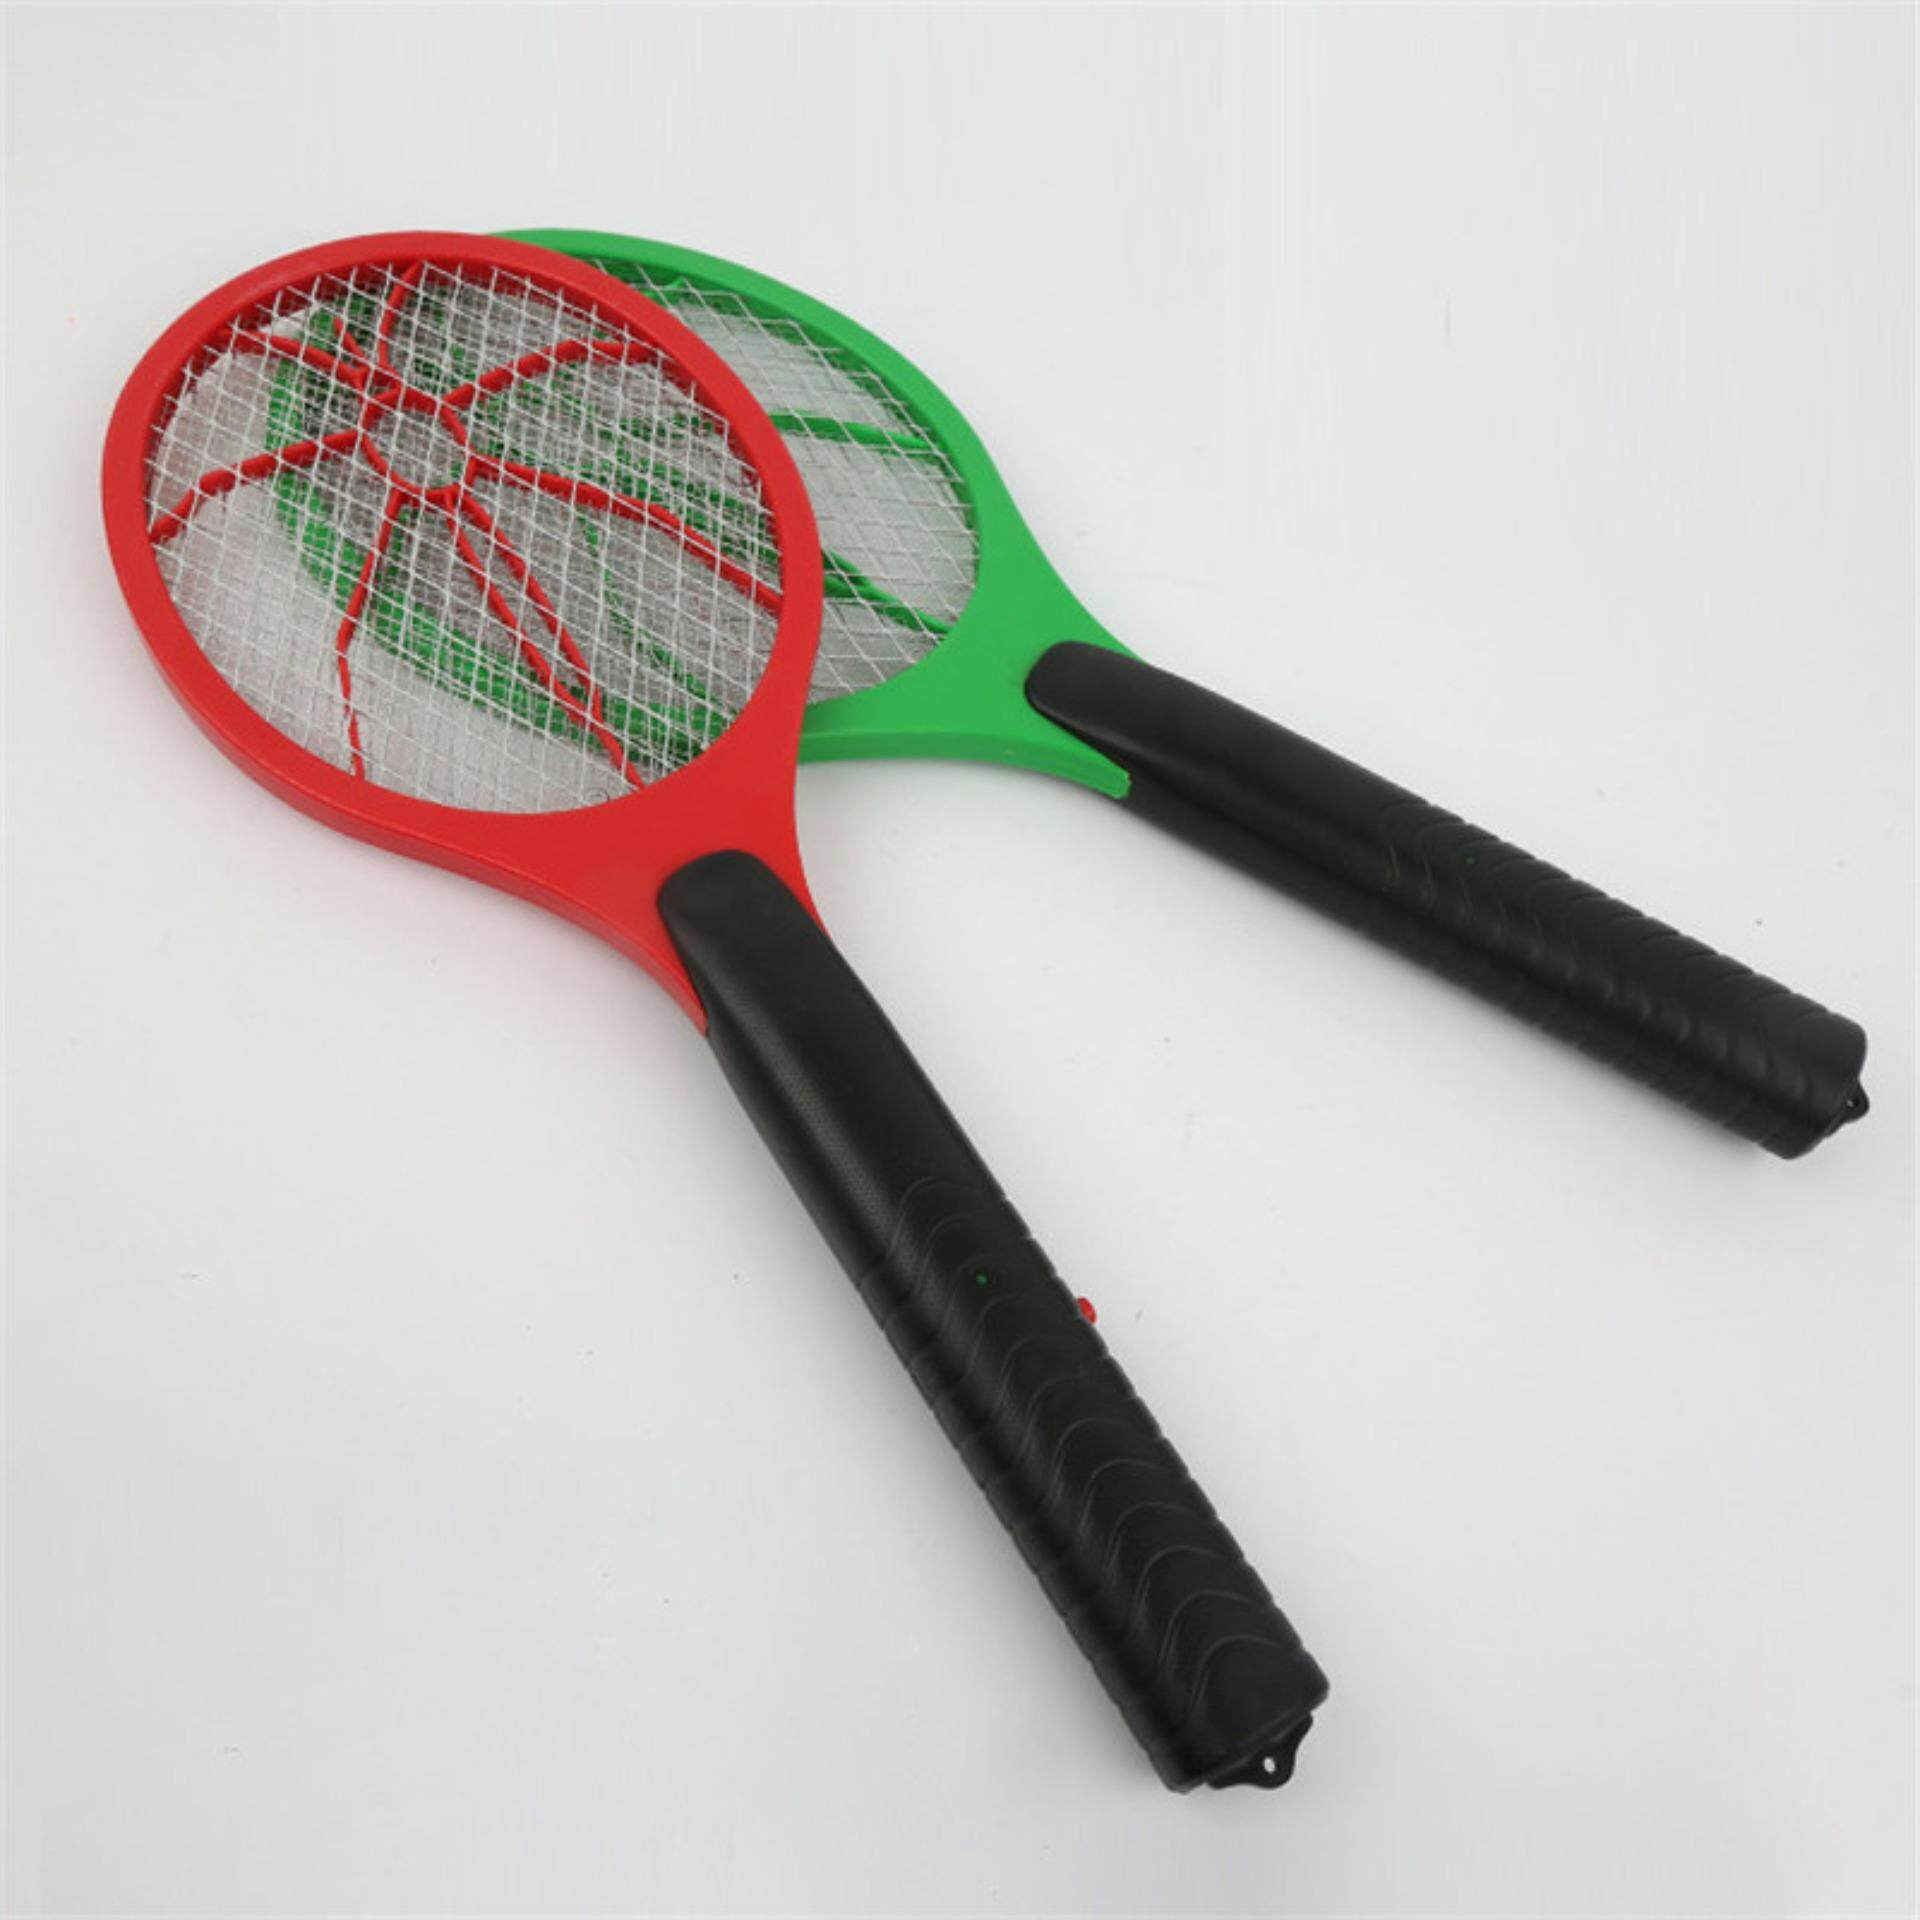 Home Tools Diy Outdoor Buy At Best Mosquito Swatter Bat Circuit Homemade Projects Iberl 1pc Electric Fly Bug Wasp Zapper Racket Insect Killer Control